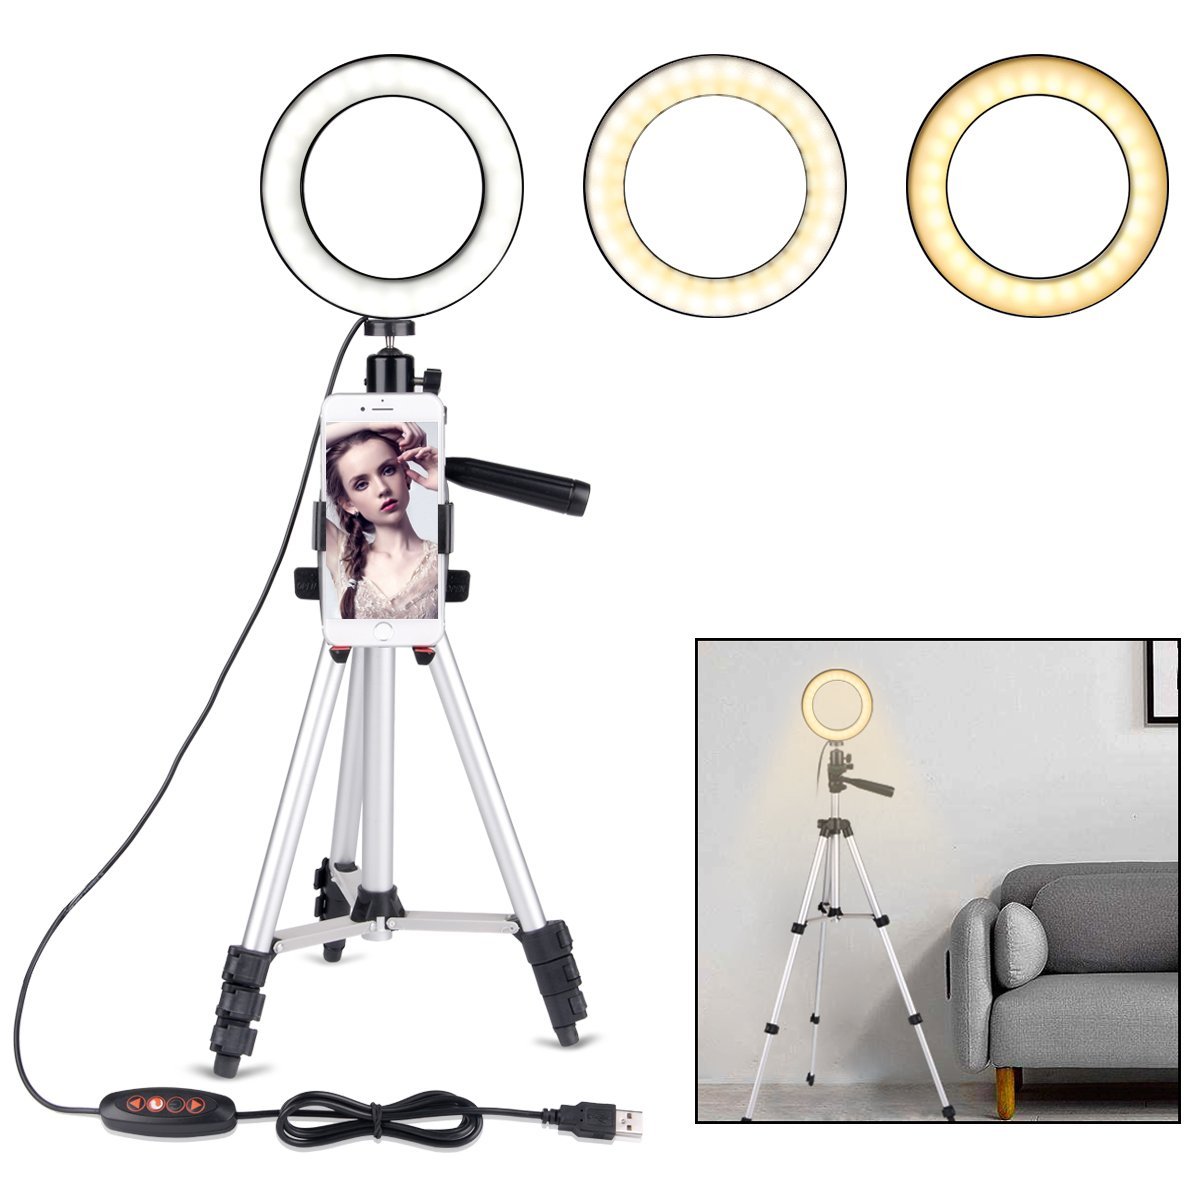 B-Land 7.9'' Ring Light with Tripod Stand for YouTube Video and Makeup, Mini LED Camera Light with Cell Phone Holder Desktop LED Lamp with 3 Light Modes & 11 Brightness Level by B-Land